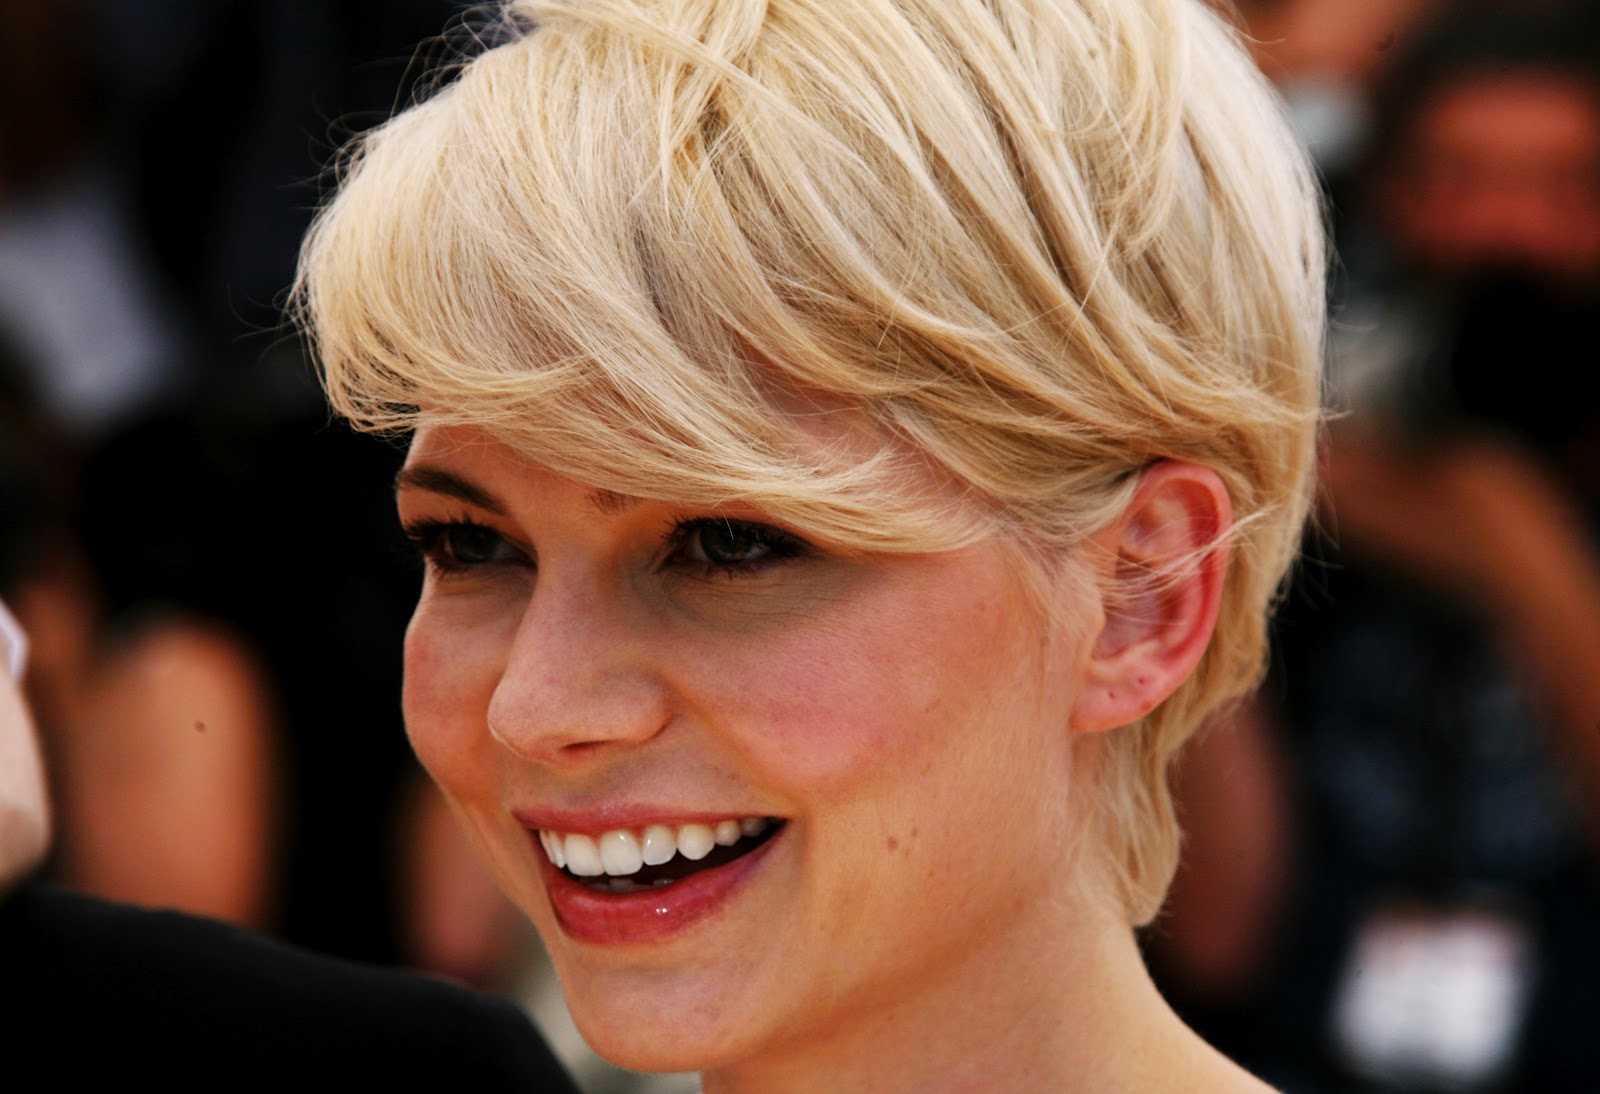 http://2.bp.blogspot.com/-l3Iy0_BEeIY/UAD_w0FLjOI/AAAAAAAAA1E/3iJ0IPYMMps/s1600/Michelle-Williams-Wallpapers-HD-3.jpg